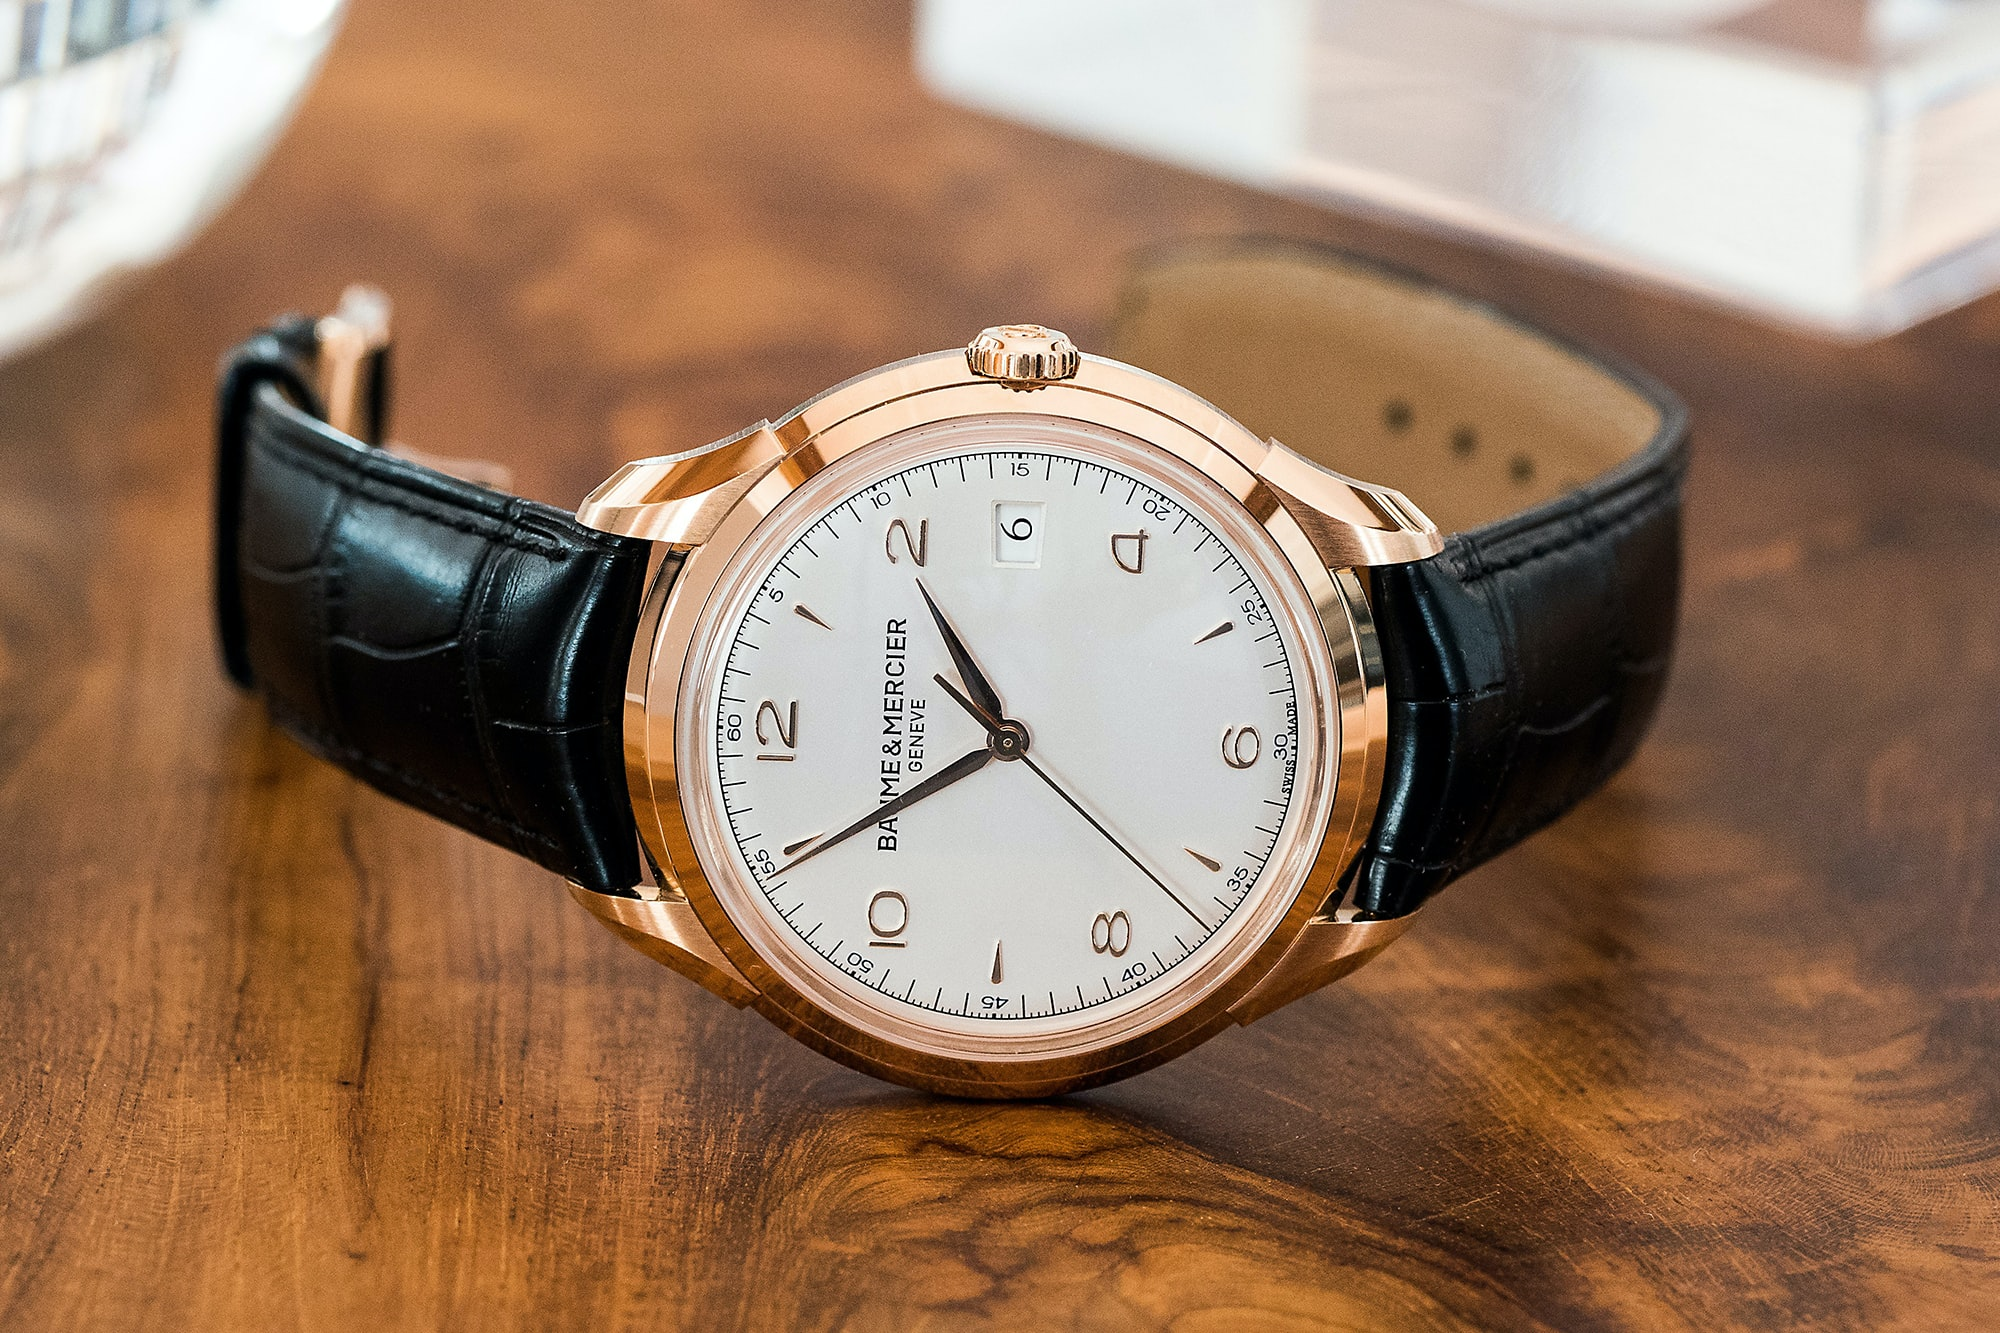 A Week On The Wrist: The Baume & Mercier Clifton Baumatic COSC 1830